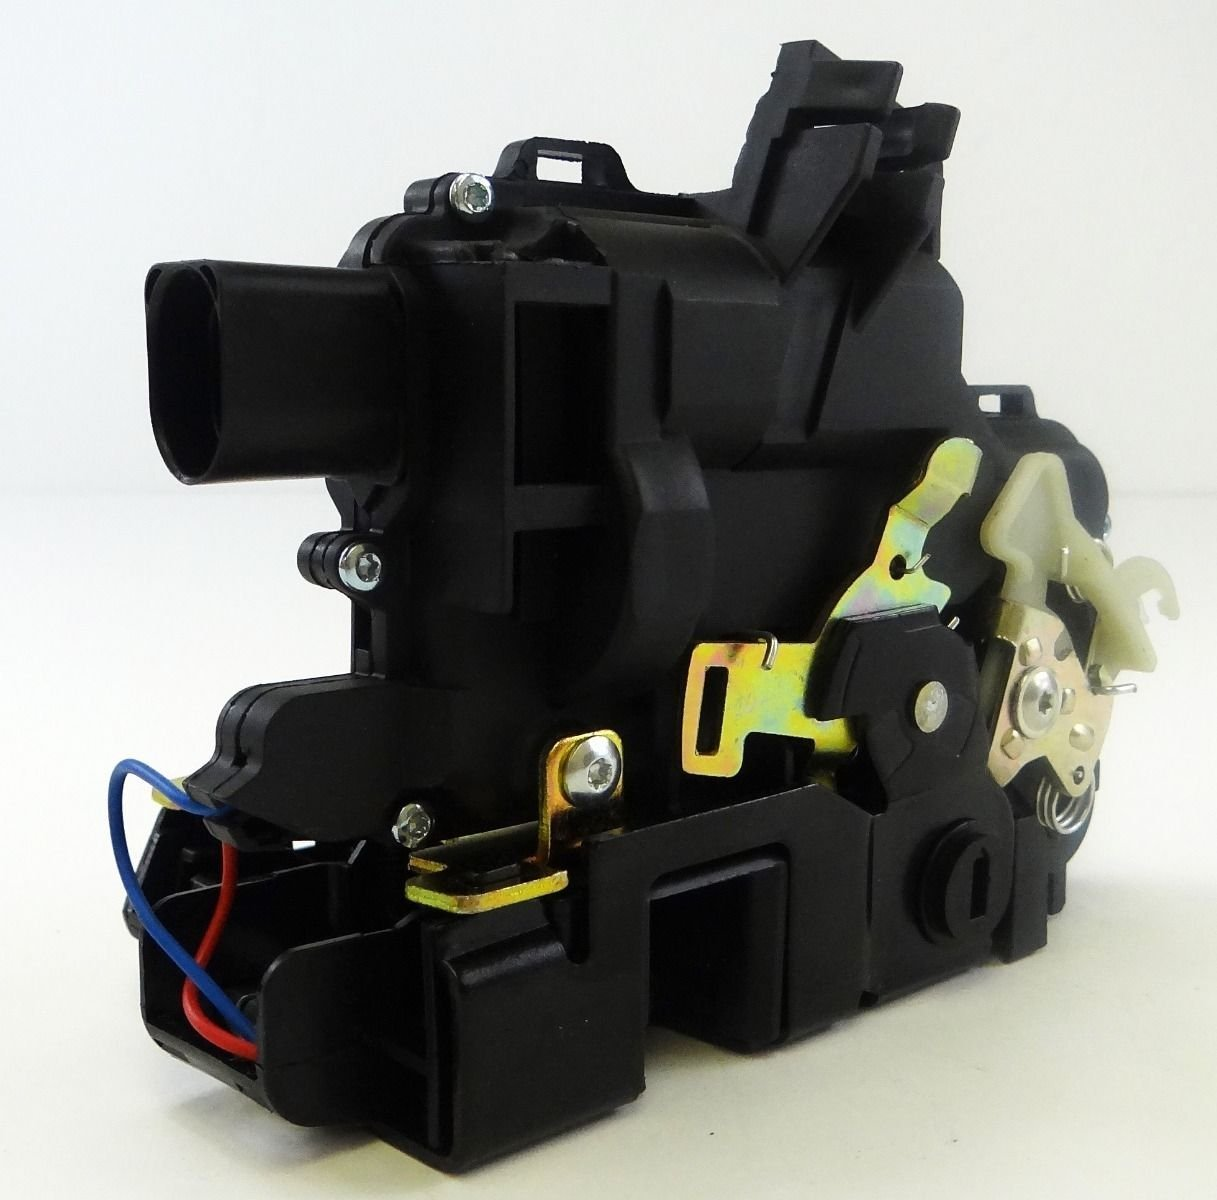 New Door Lock Actuator & Latch Front Left Driver Side For VW Jetta Passat Golf by Aftermarket (Image #5)